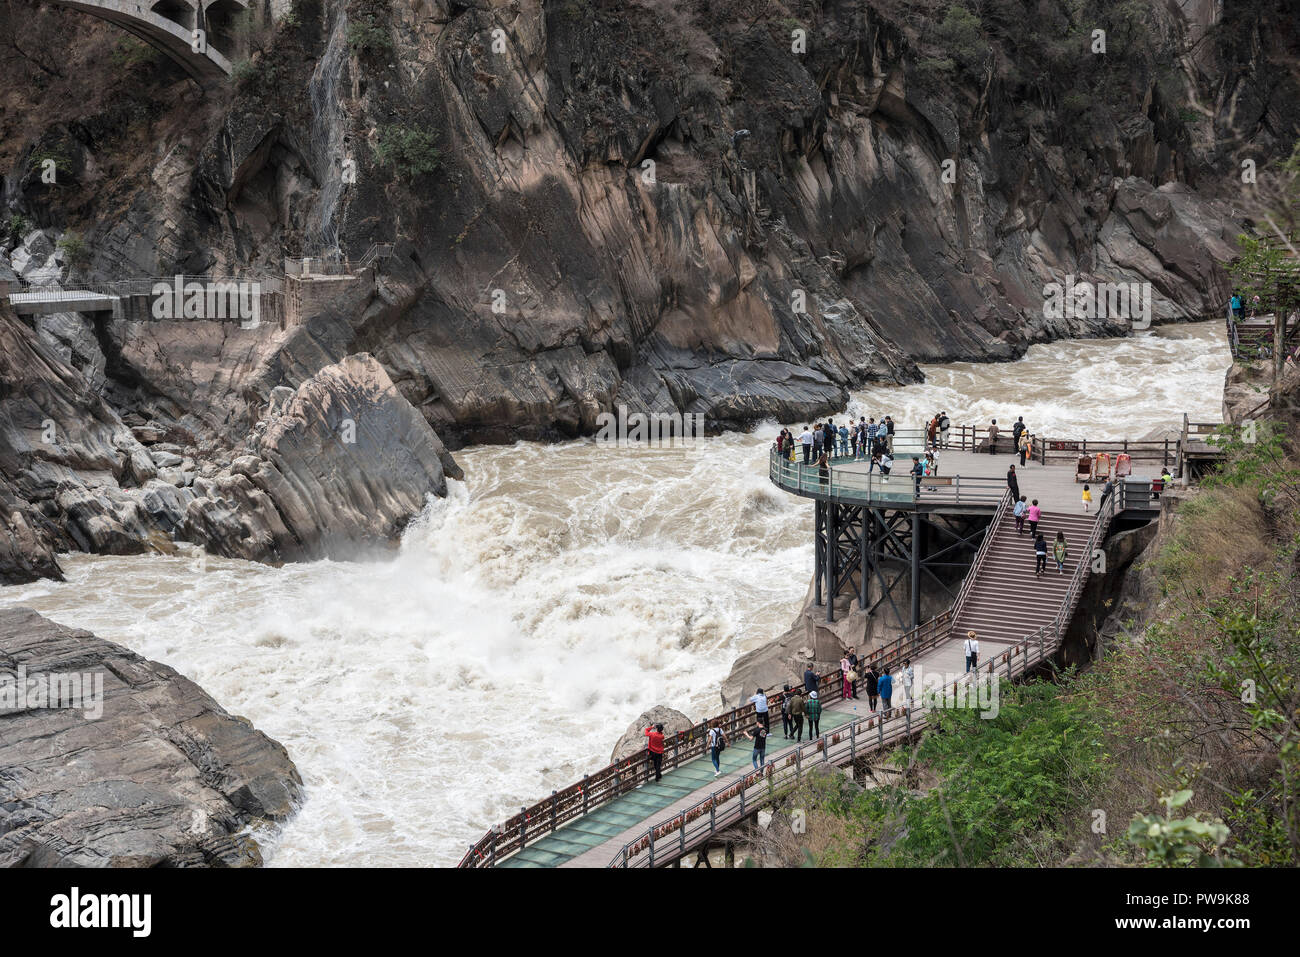 Tiger leaping gorge said to be the one of the deepest and most dramatic gorges in the World stretching for 16km long. Kunming province China - Stock Image